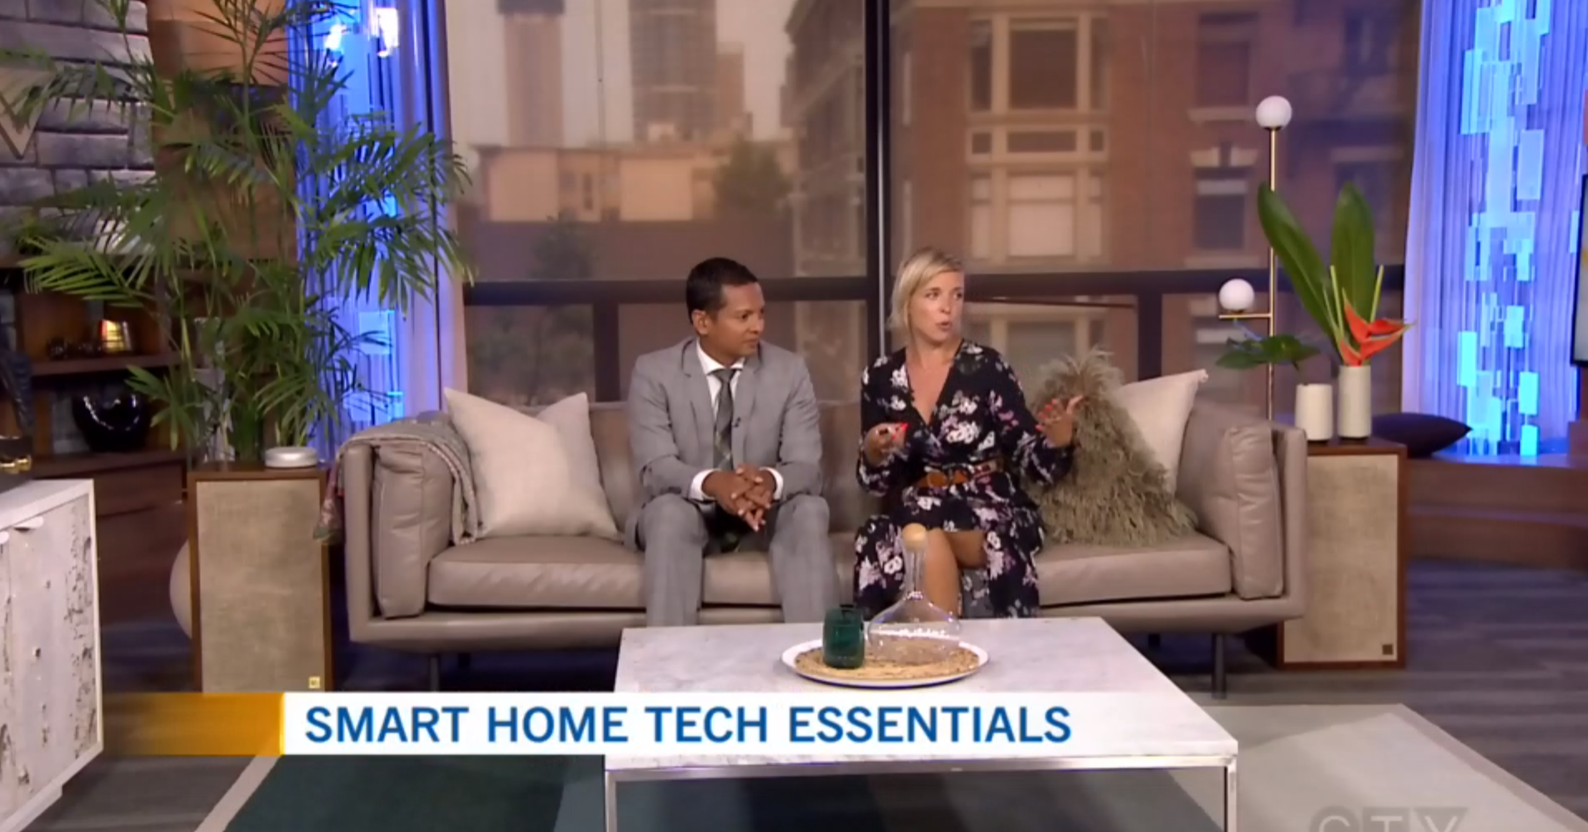 CTV Morning Live: Stylishly Integrating Technology into Decor